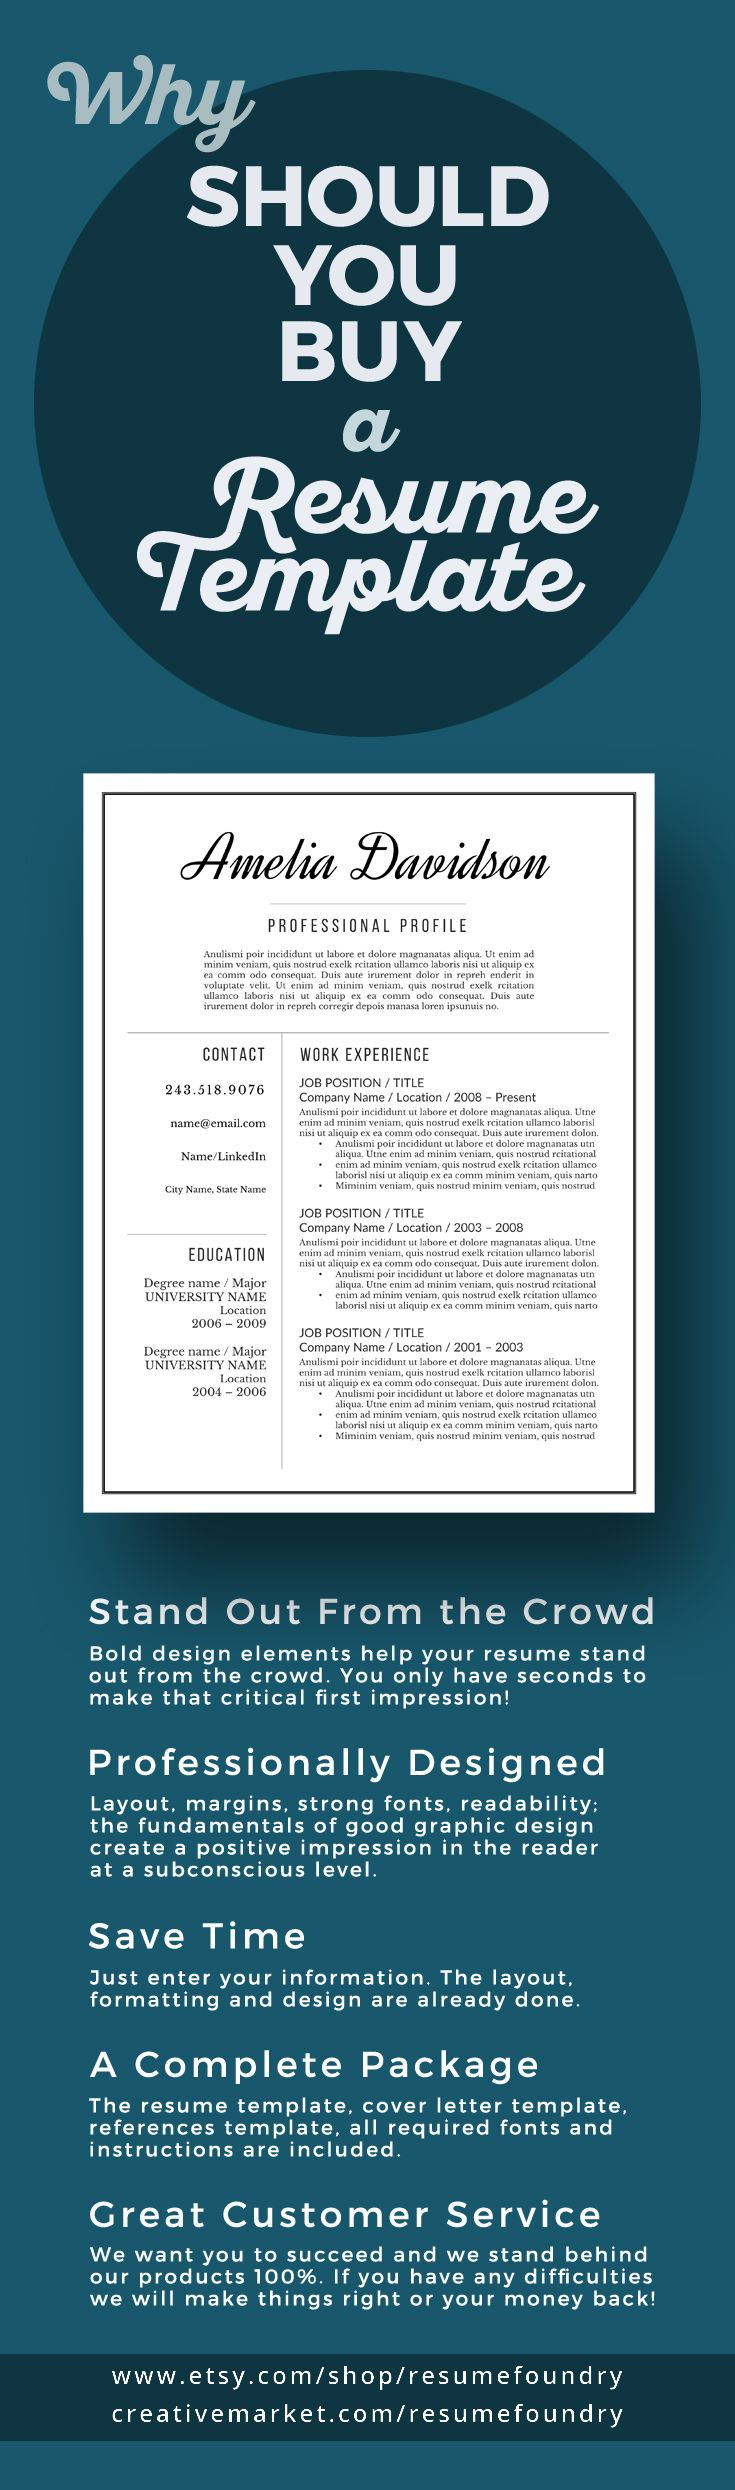 178 best Resume Tips images on Pinterest | Resume tips, Resume and ...